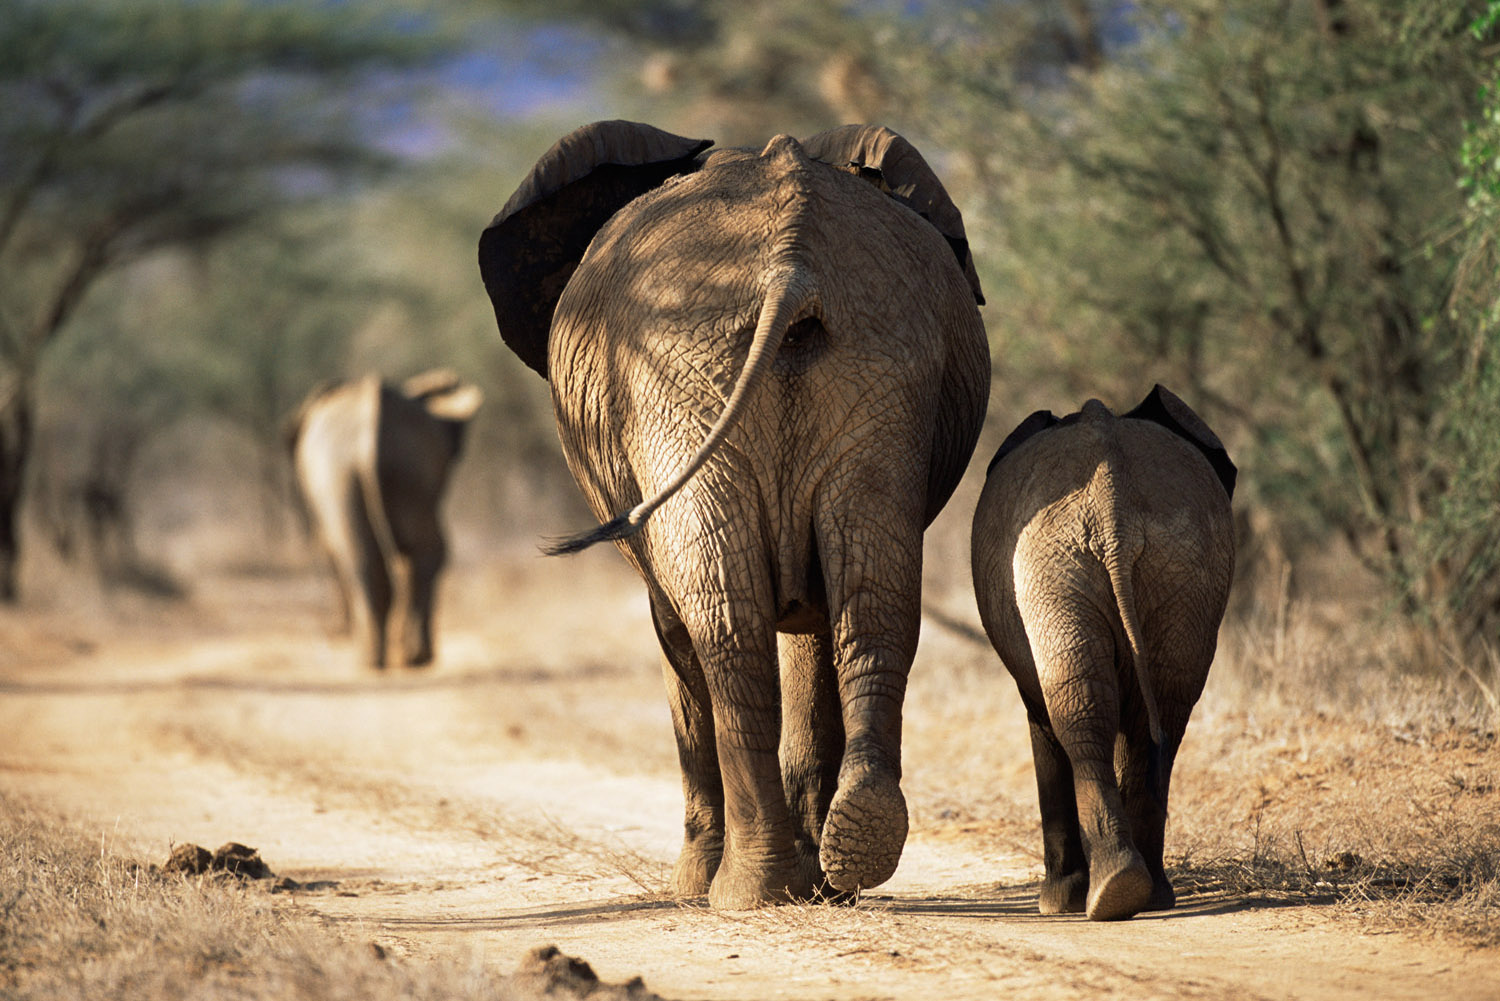 African elephants heading off along track, Samburu National Reserve, Kenya